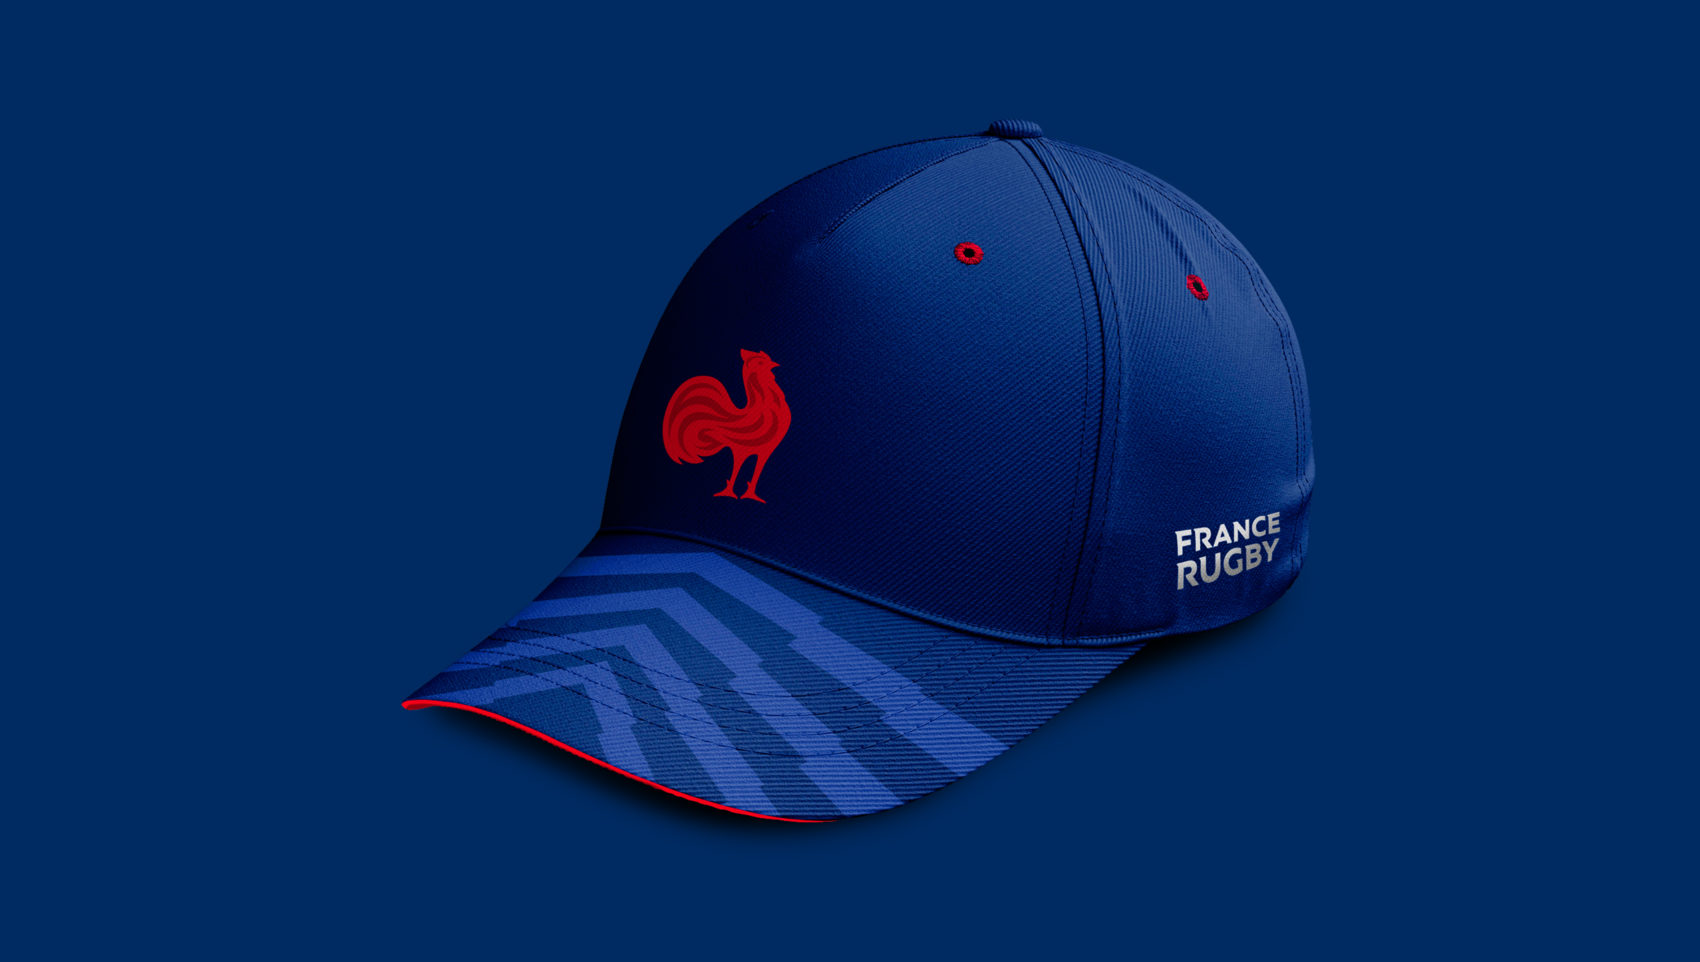 Projet_project_leroy_tremblot_FFR_federation_francaise_rugby_french_nouvelle_identite_new_identity_branding_04